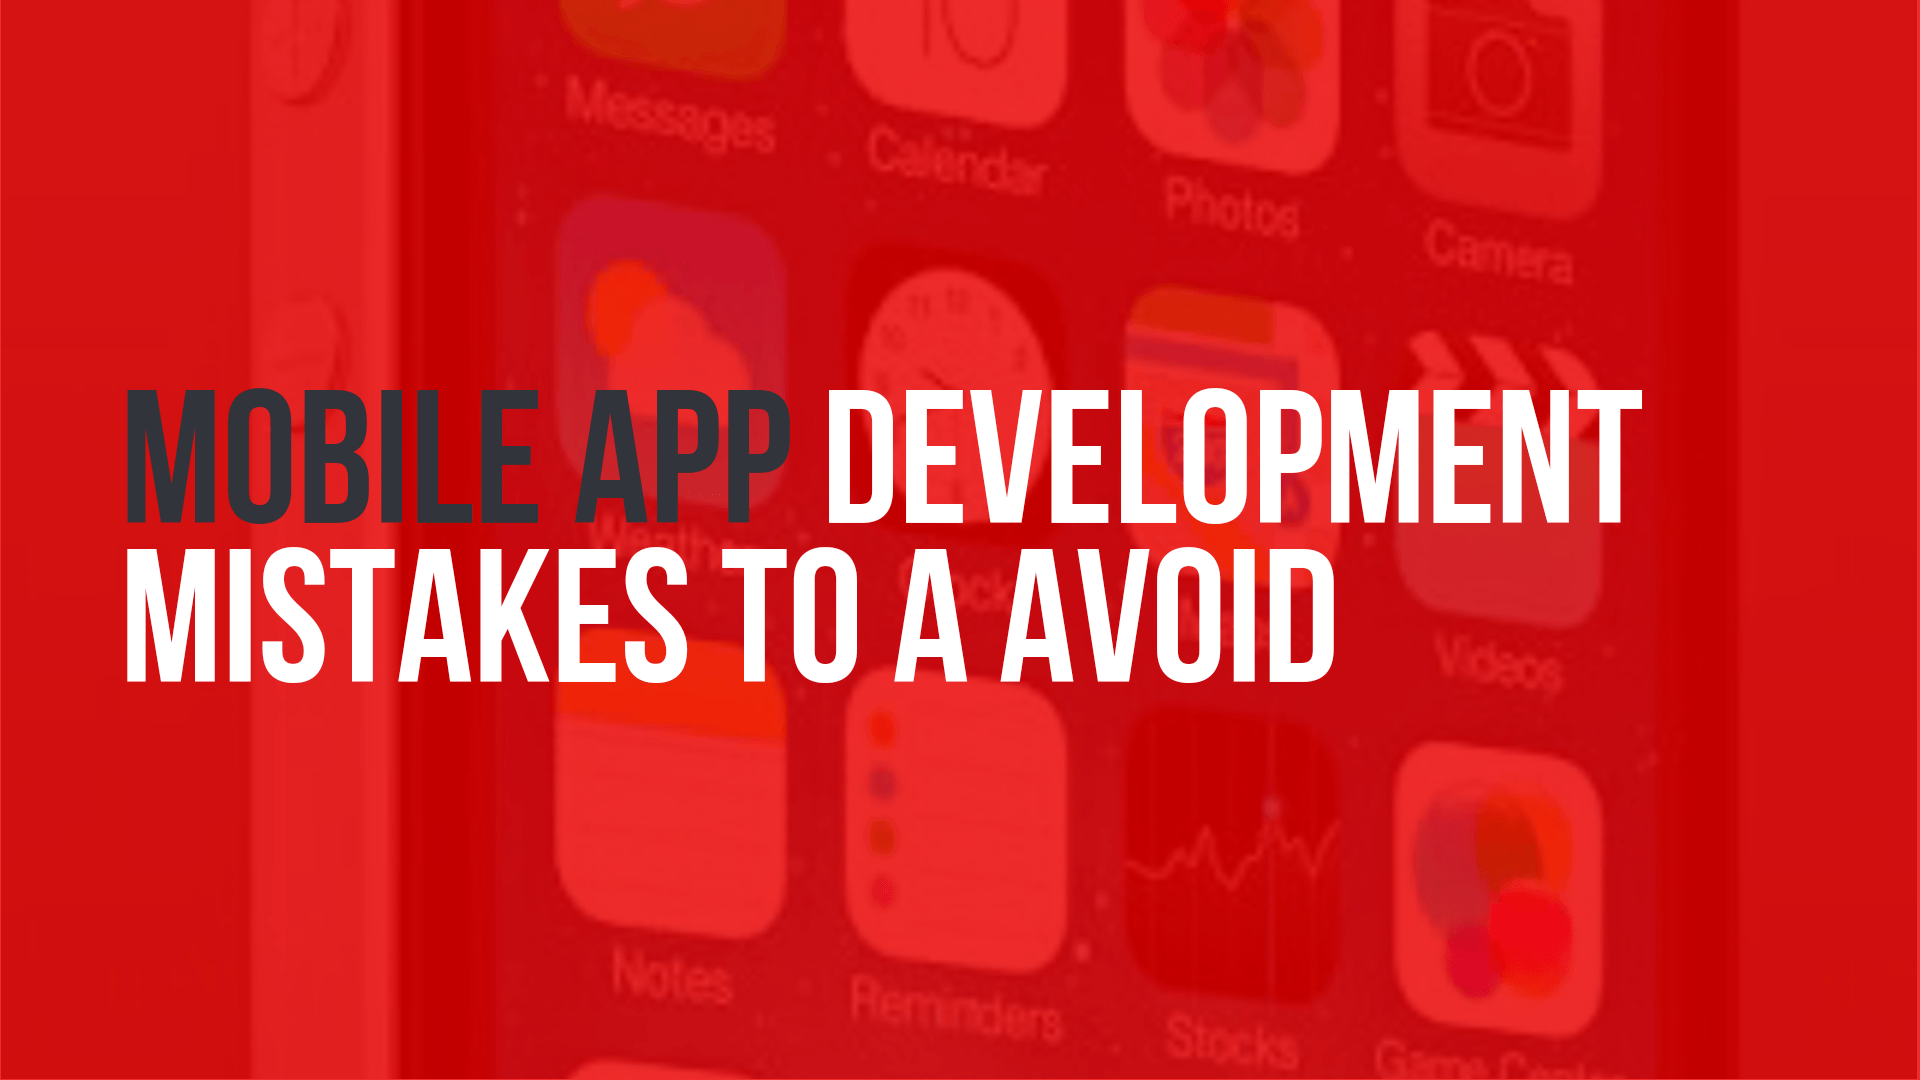 5 Mobile App Development Mistakes to Avoid